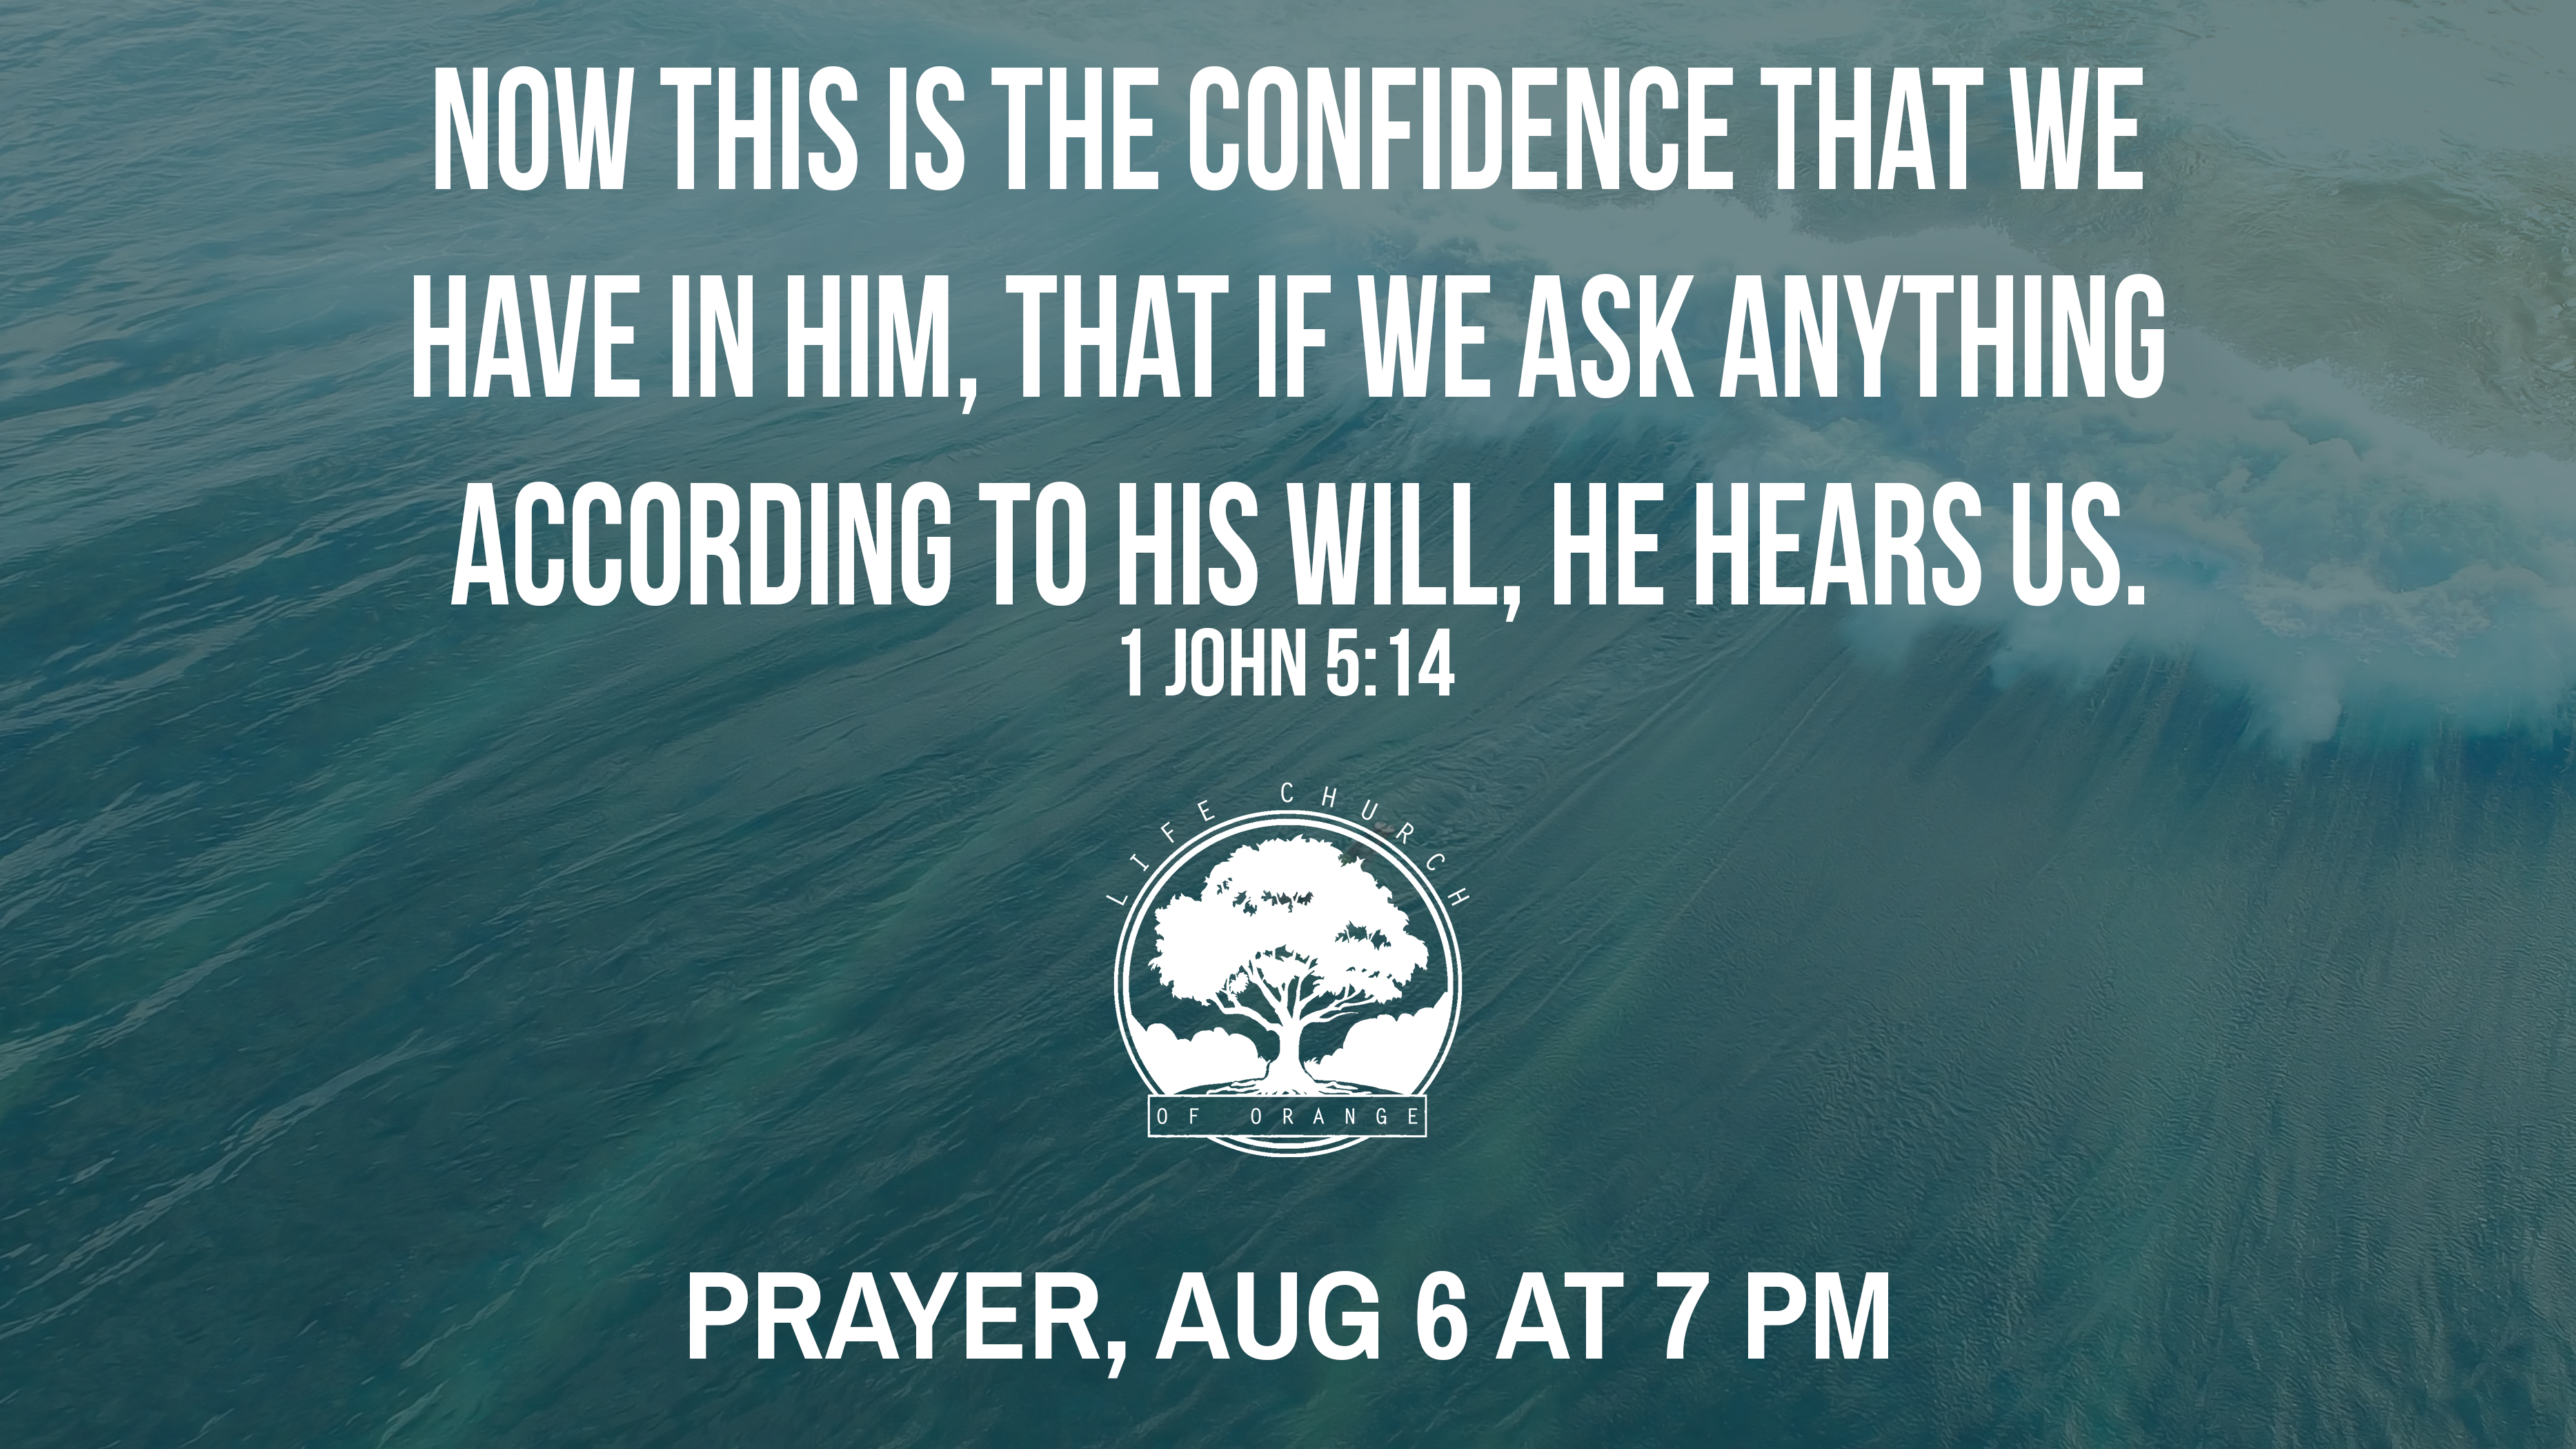 We invite you to join us Tuesday, Aug 6 and Aug 20, at 7 PM for corporate prayer.